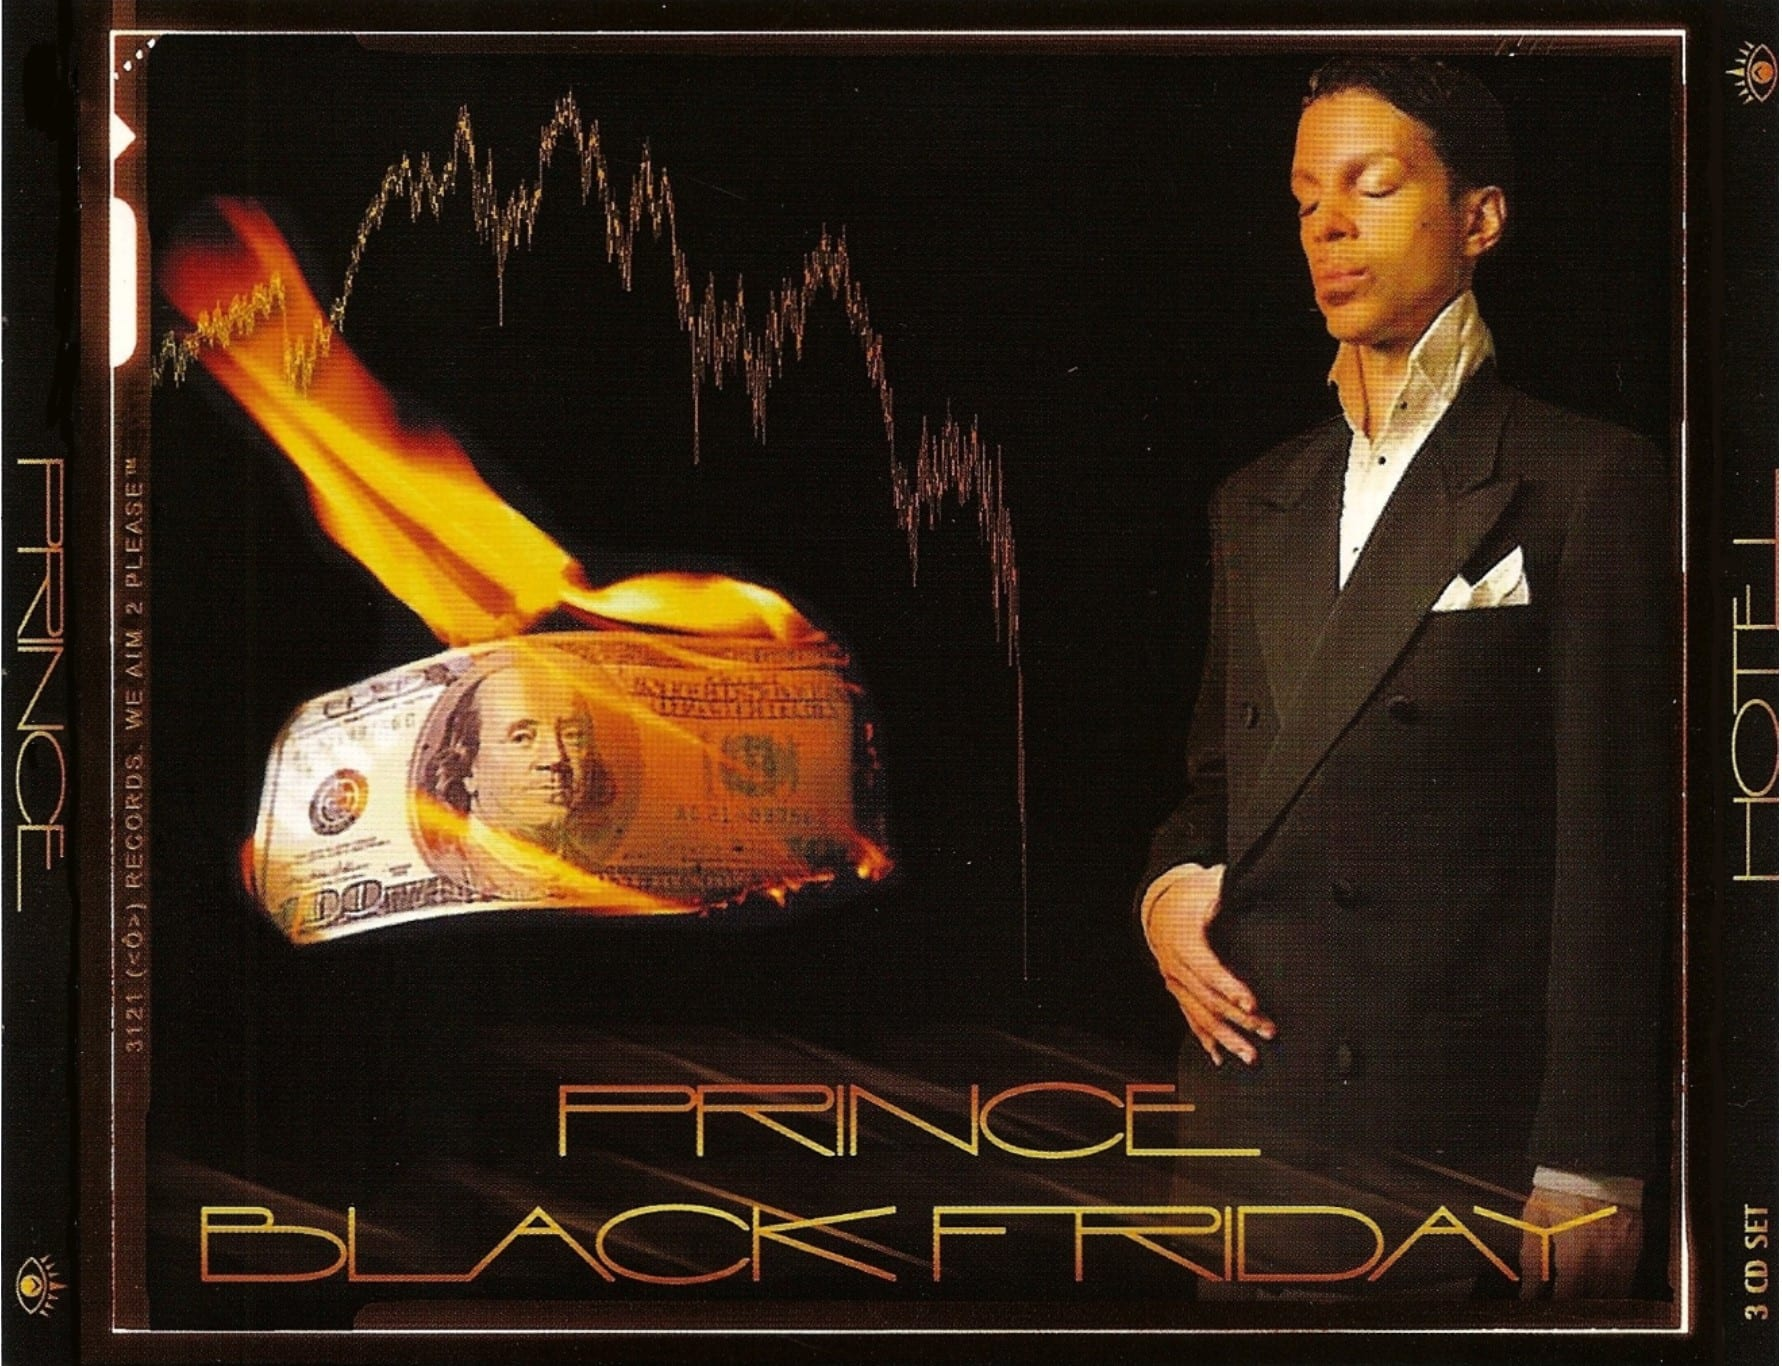 Prince - Black Friday (2008) 5 CD SET 11